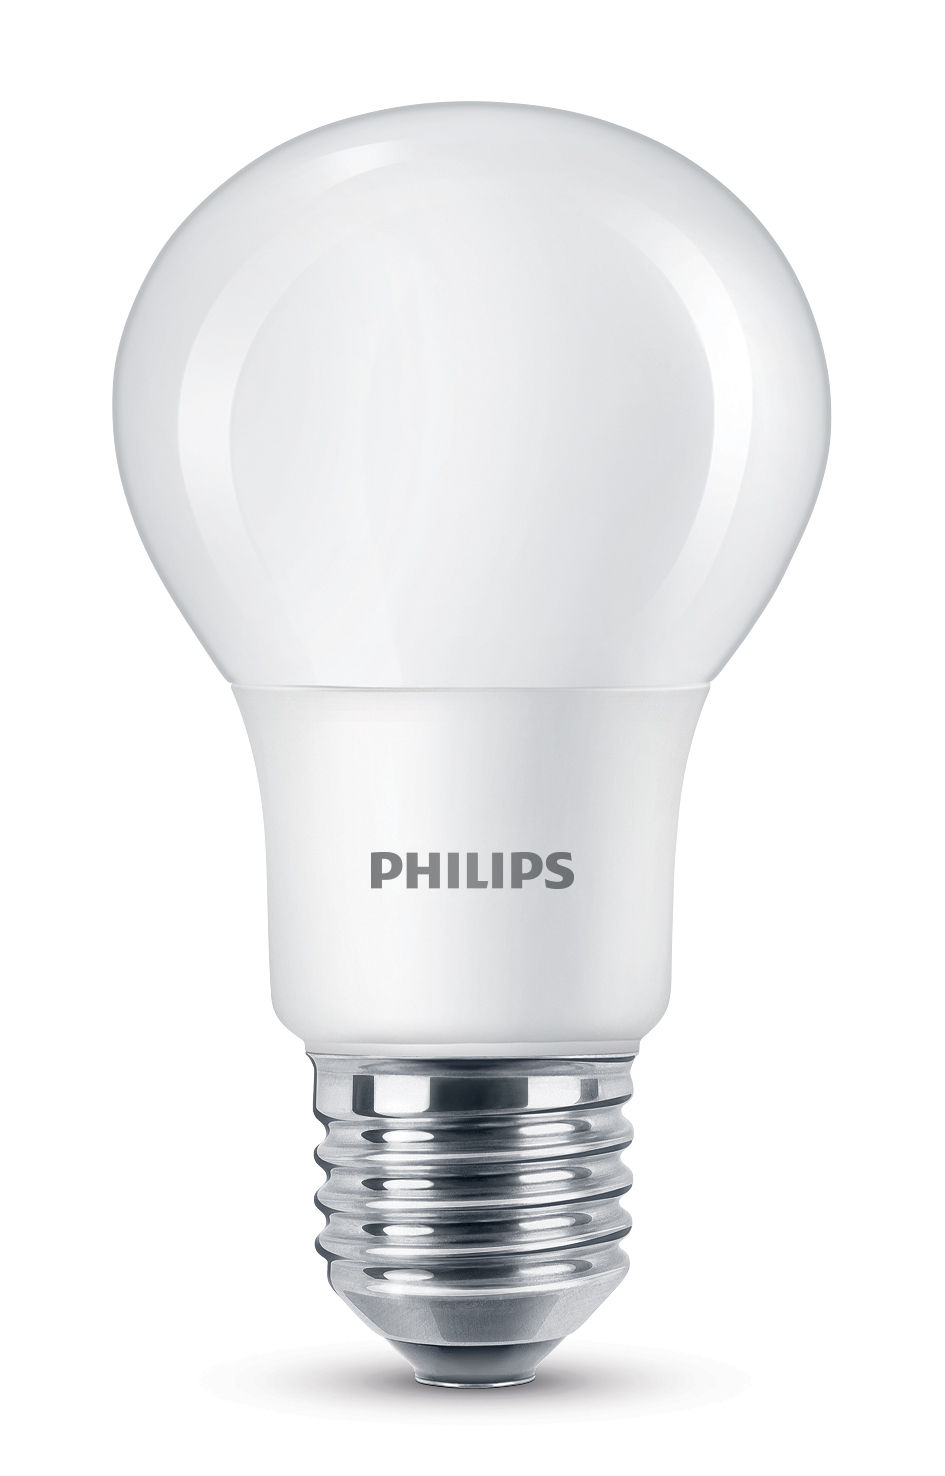 standard d polie led bulb e27 7 5w 60w 806 lumen 7 5w 60w by philips made in design uk. Black Bedroom Furniture Sets. Home Design Ideas